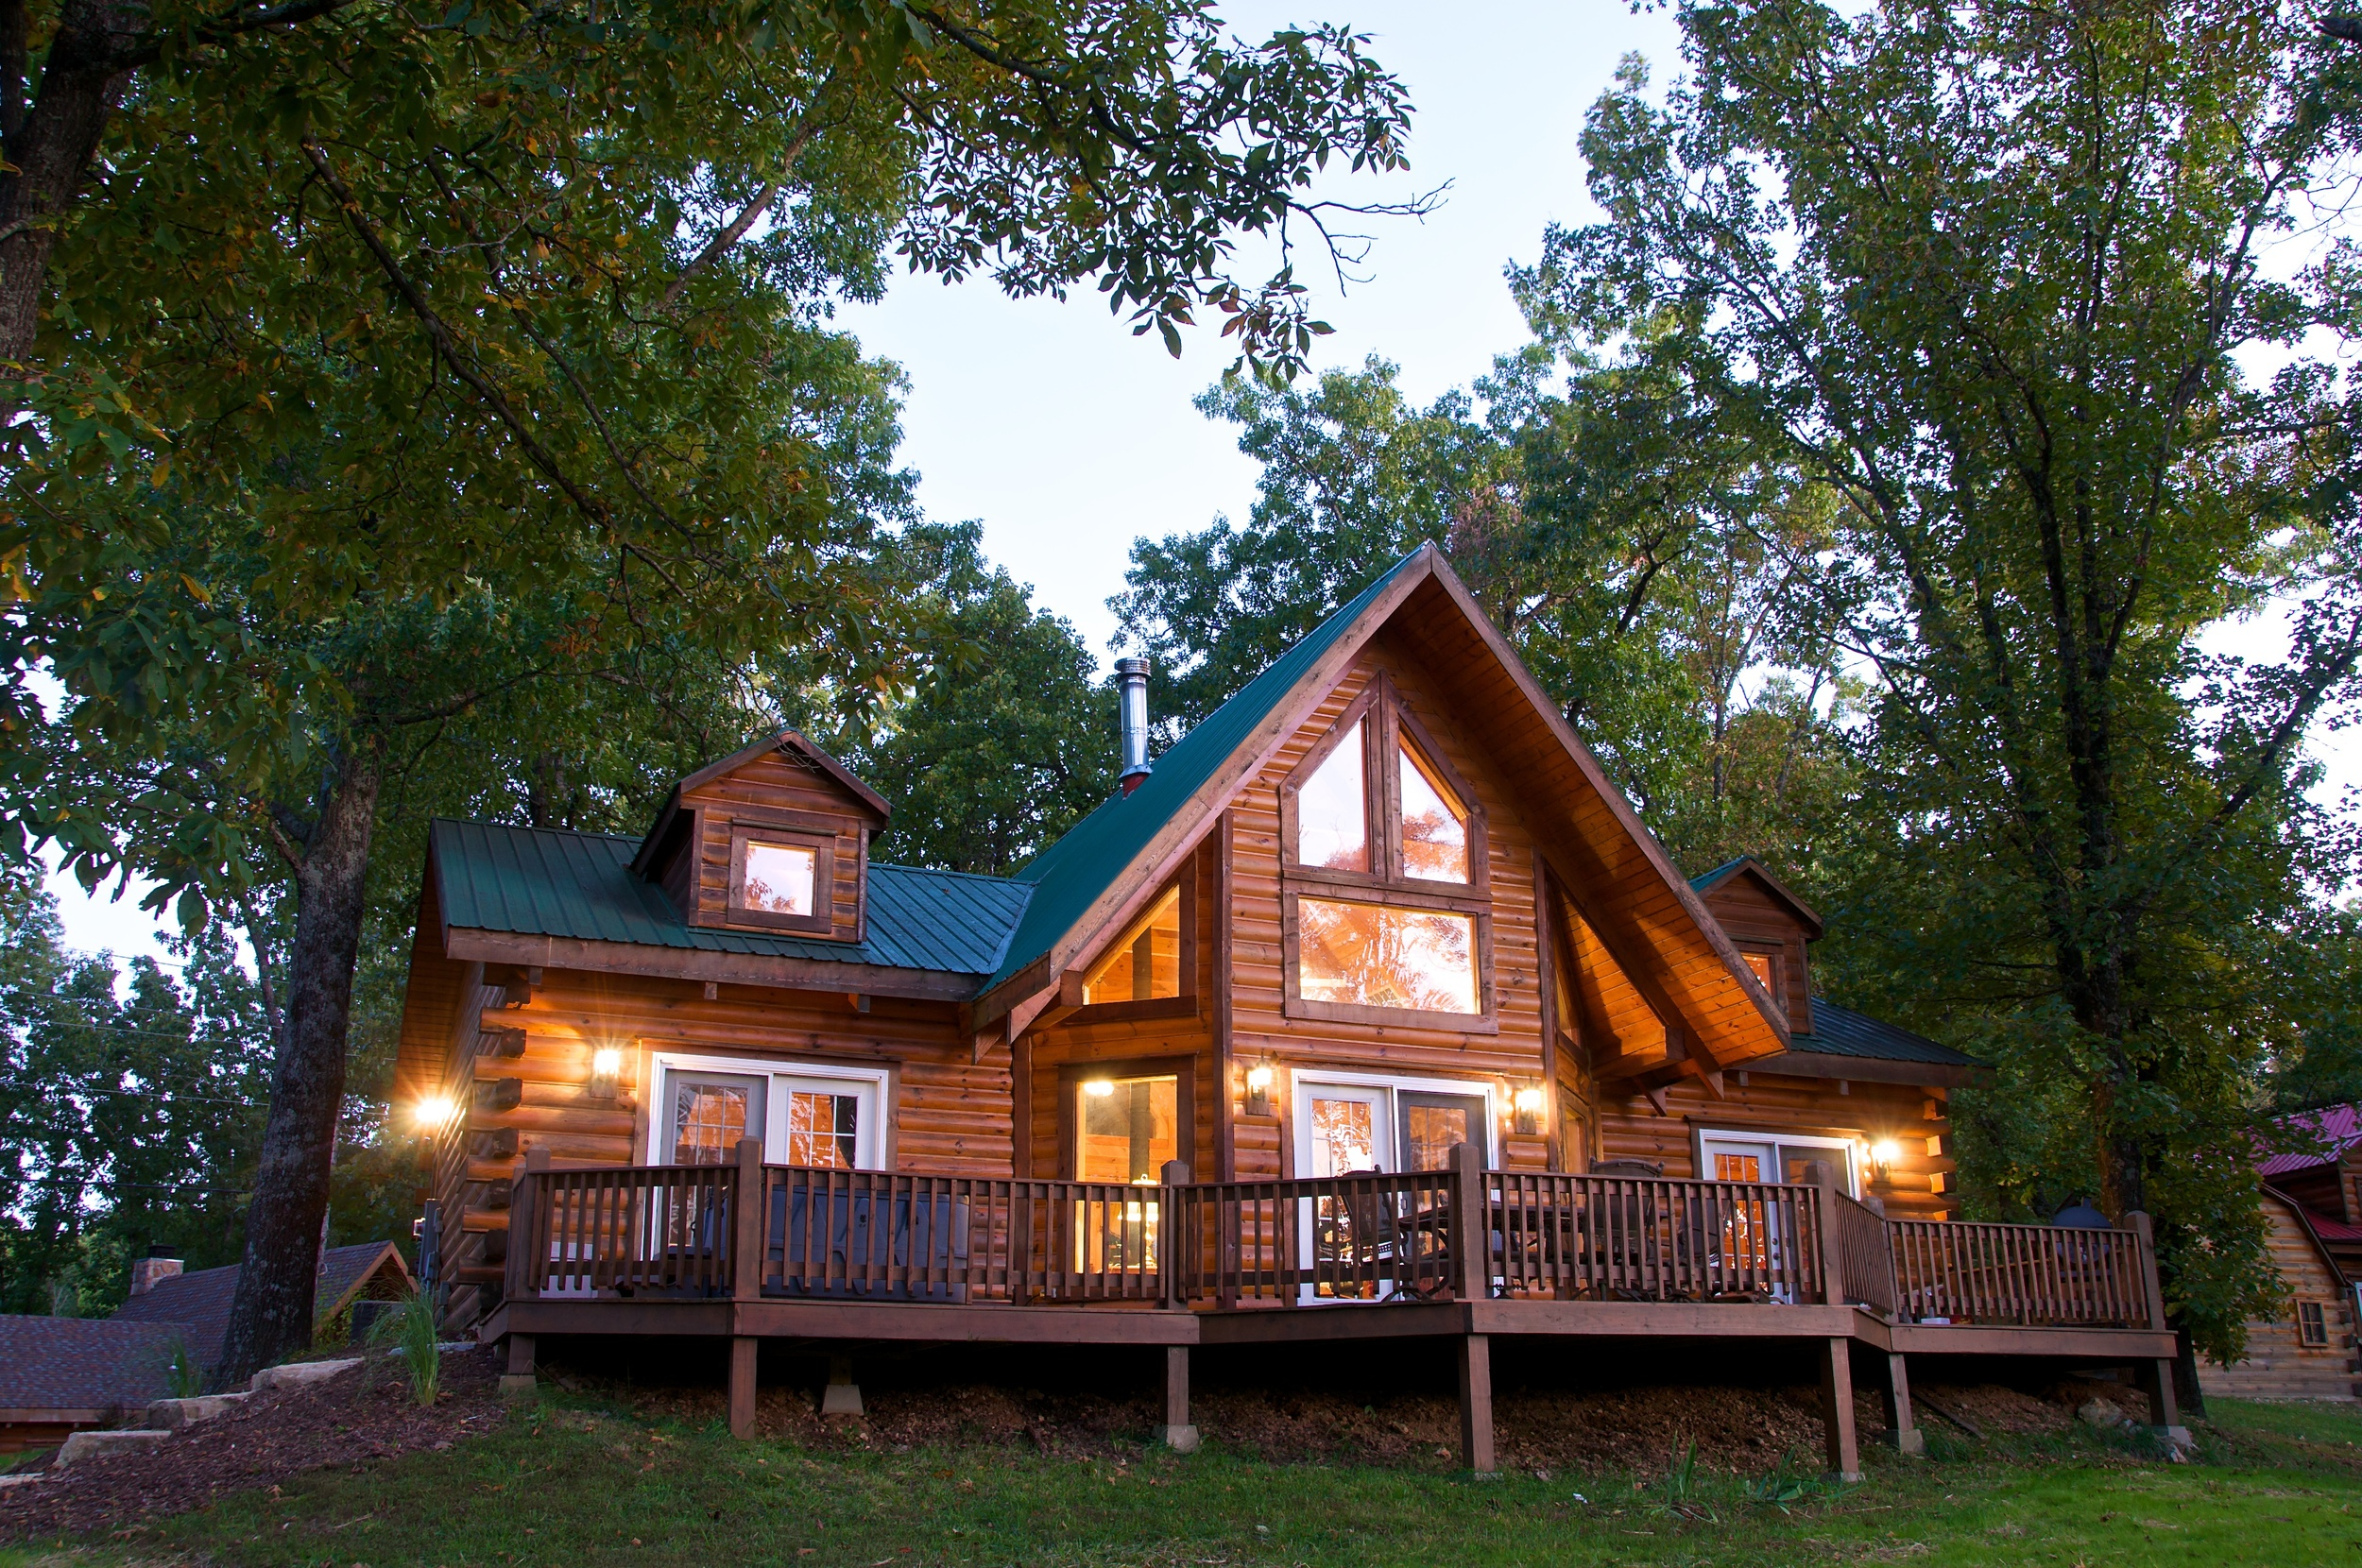 overlooking whispering hills lr arkansas lakeview luxury log bluff cedar cabins in romantic